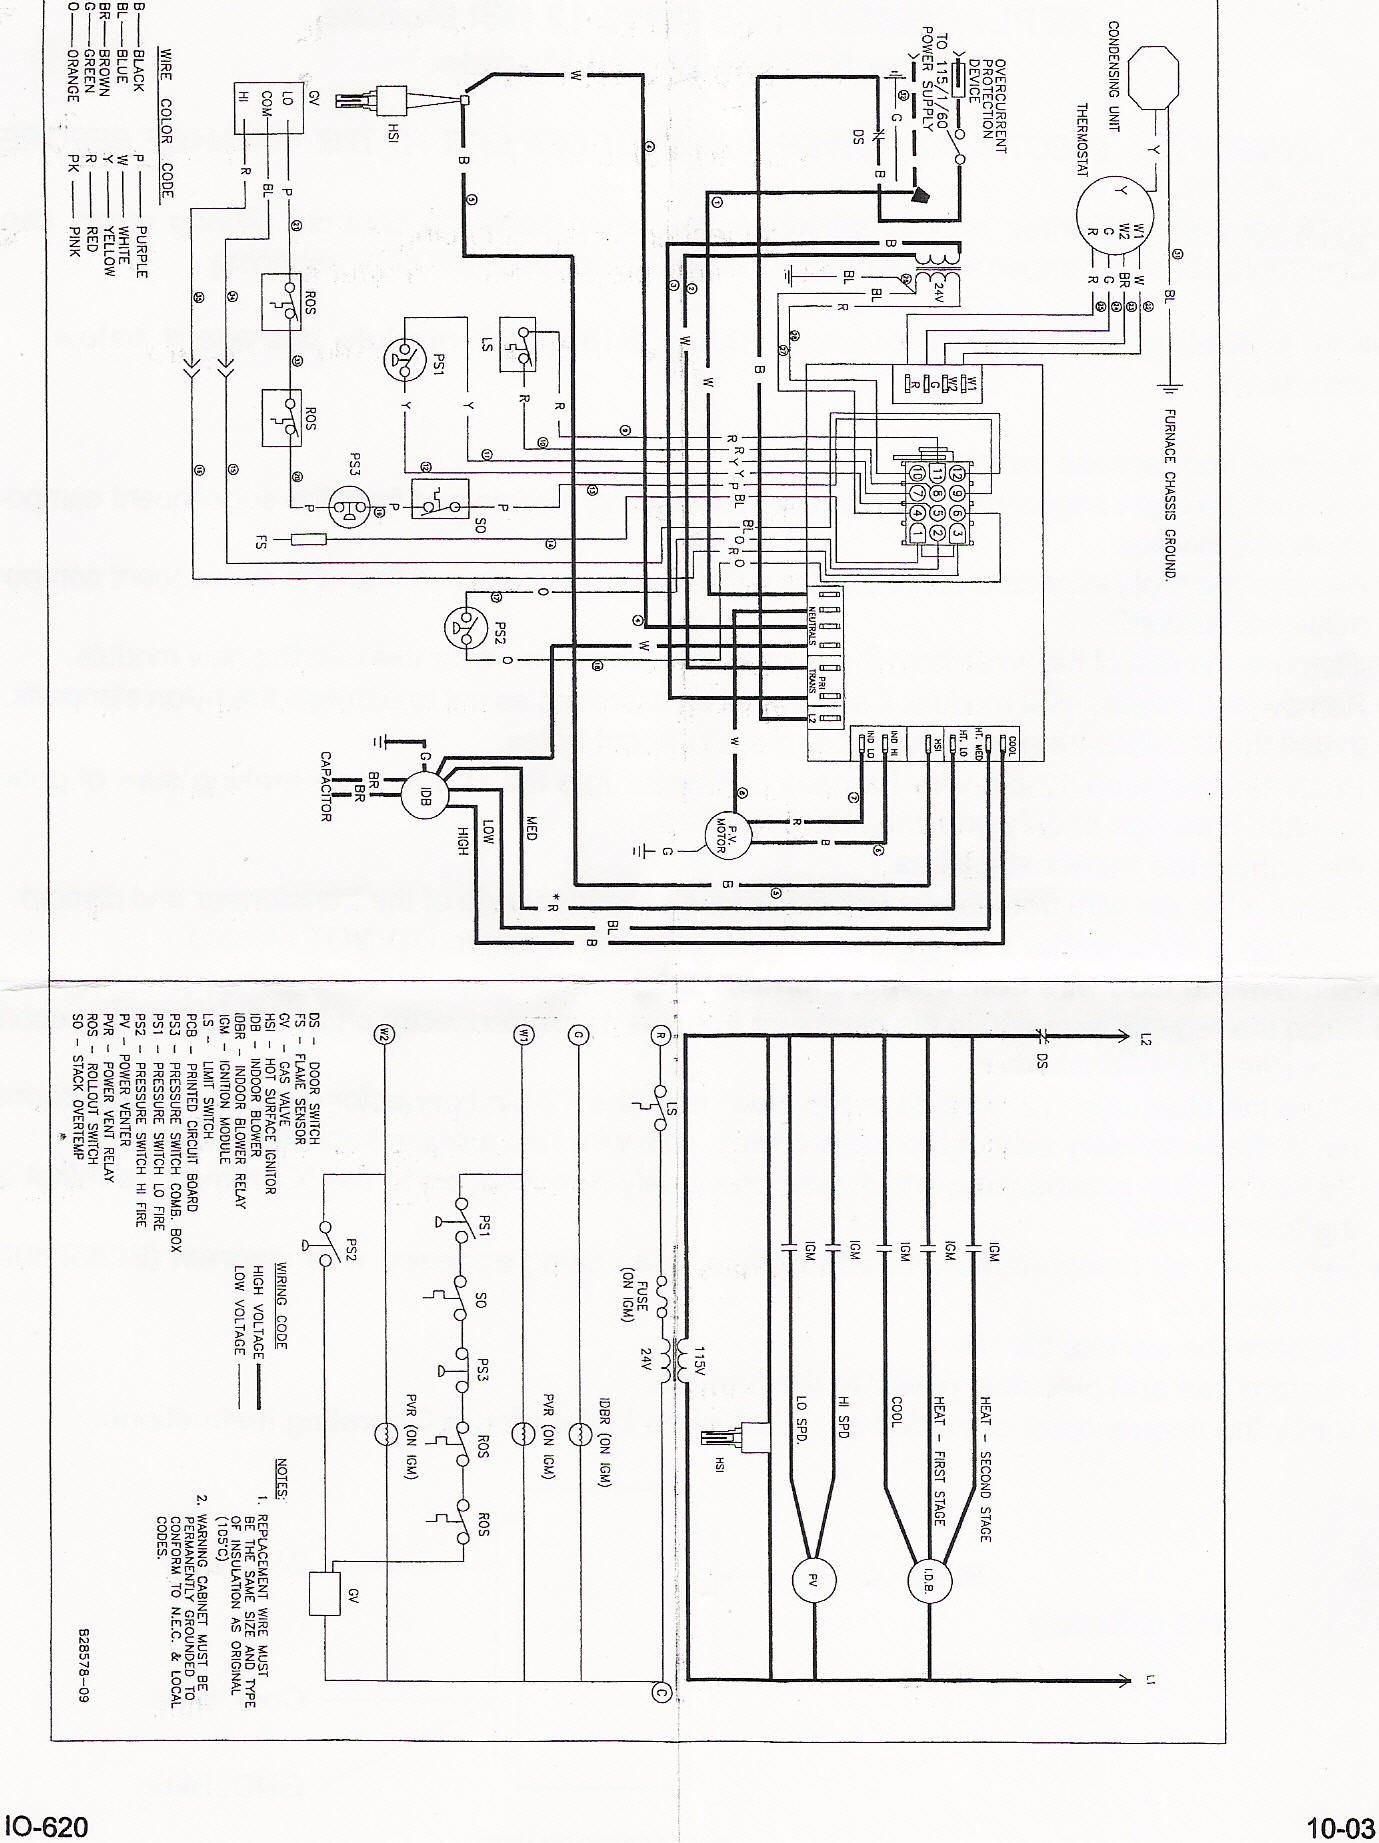 Electric Pump Schematics